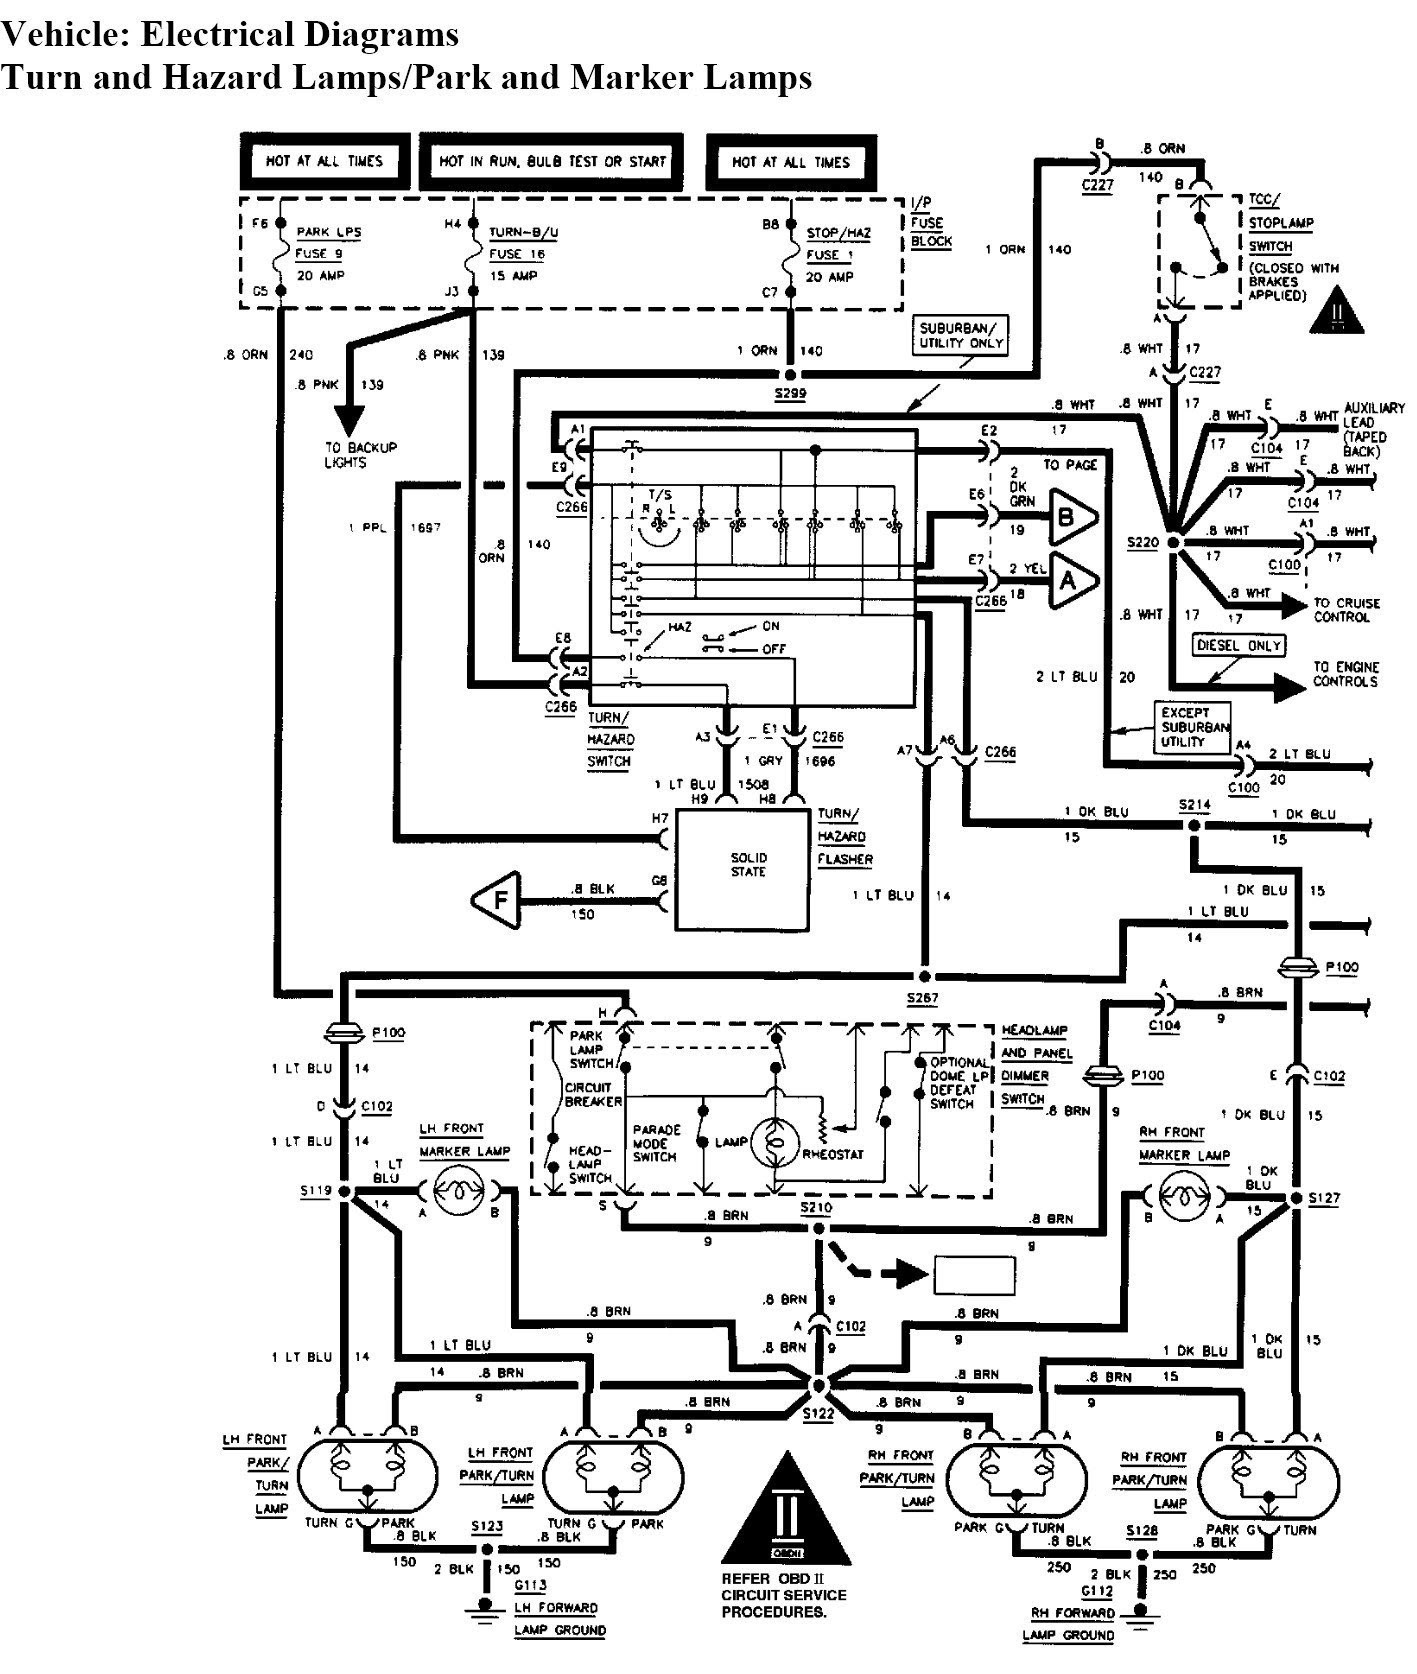 2004 Tahoe Wiring Diagrams Light Wiring Diagram For 1981 Ford 302 Begeboy Wiring Diagram Source